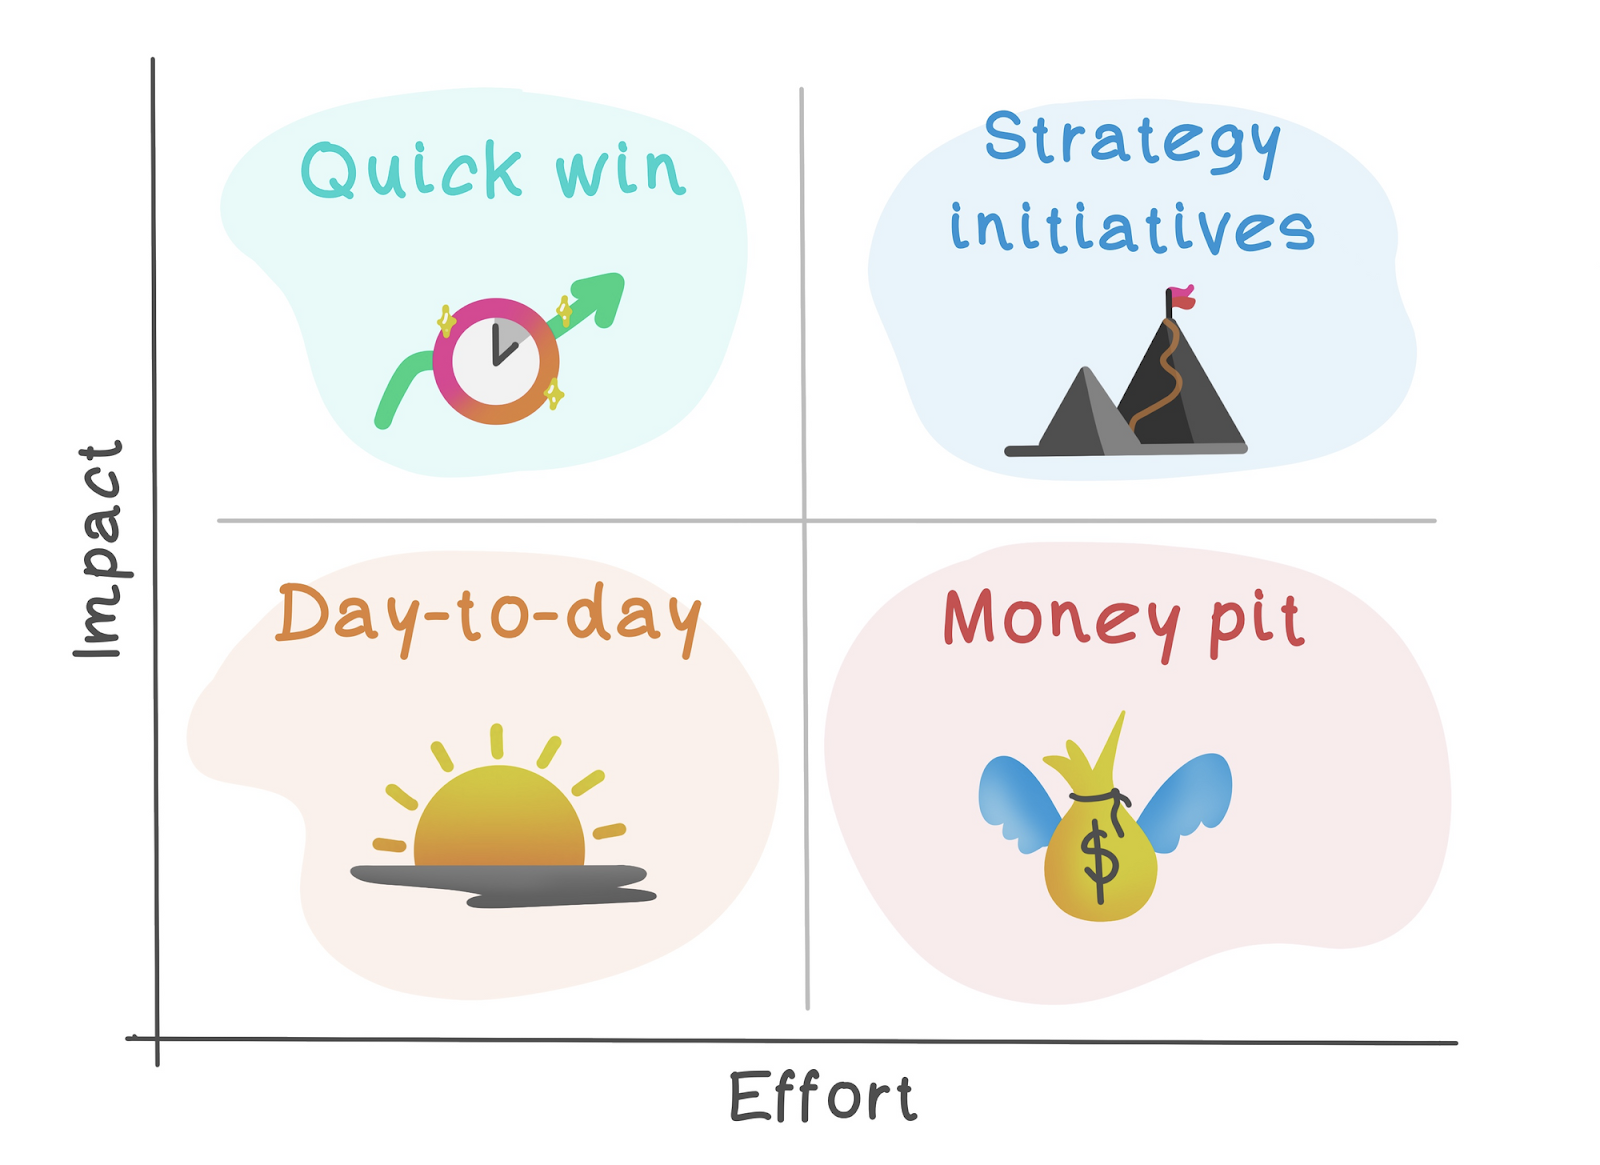 Impact vs. Effort Quadrant: quick win, strategy initiatives, day-to-day, money pit